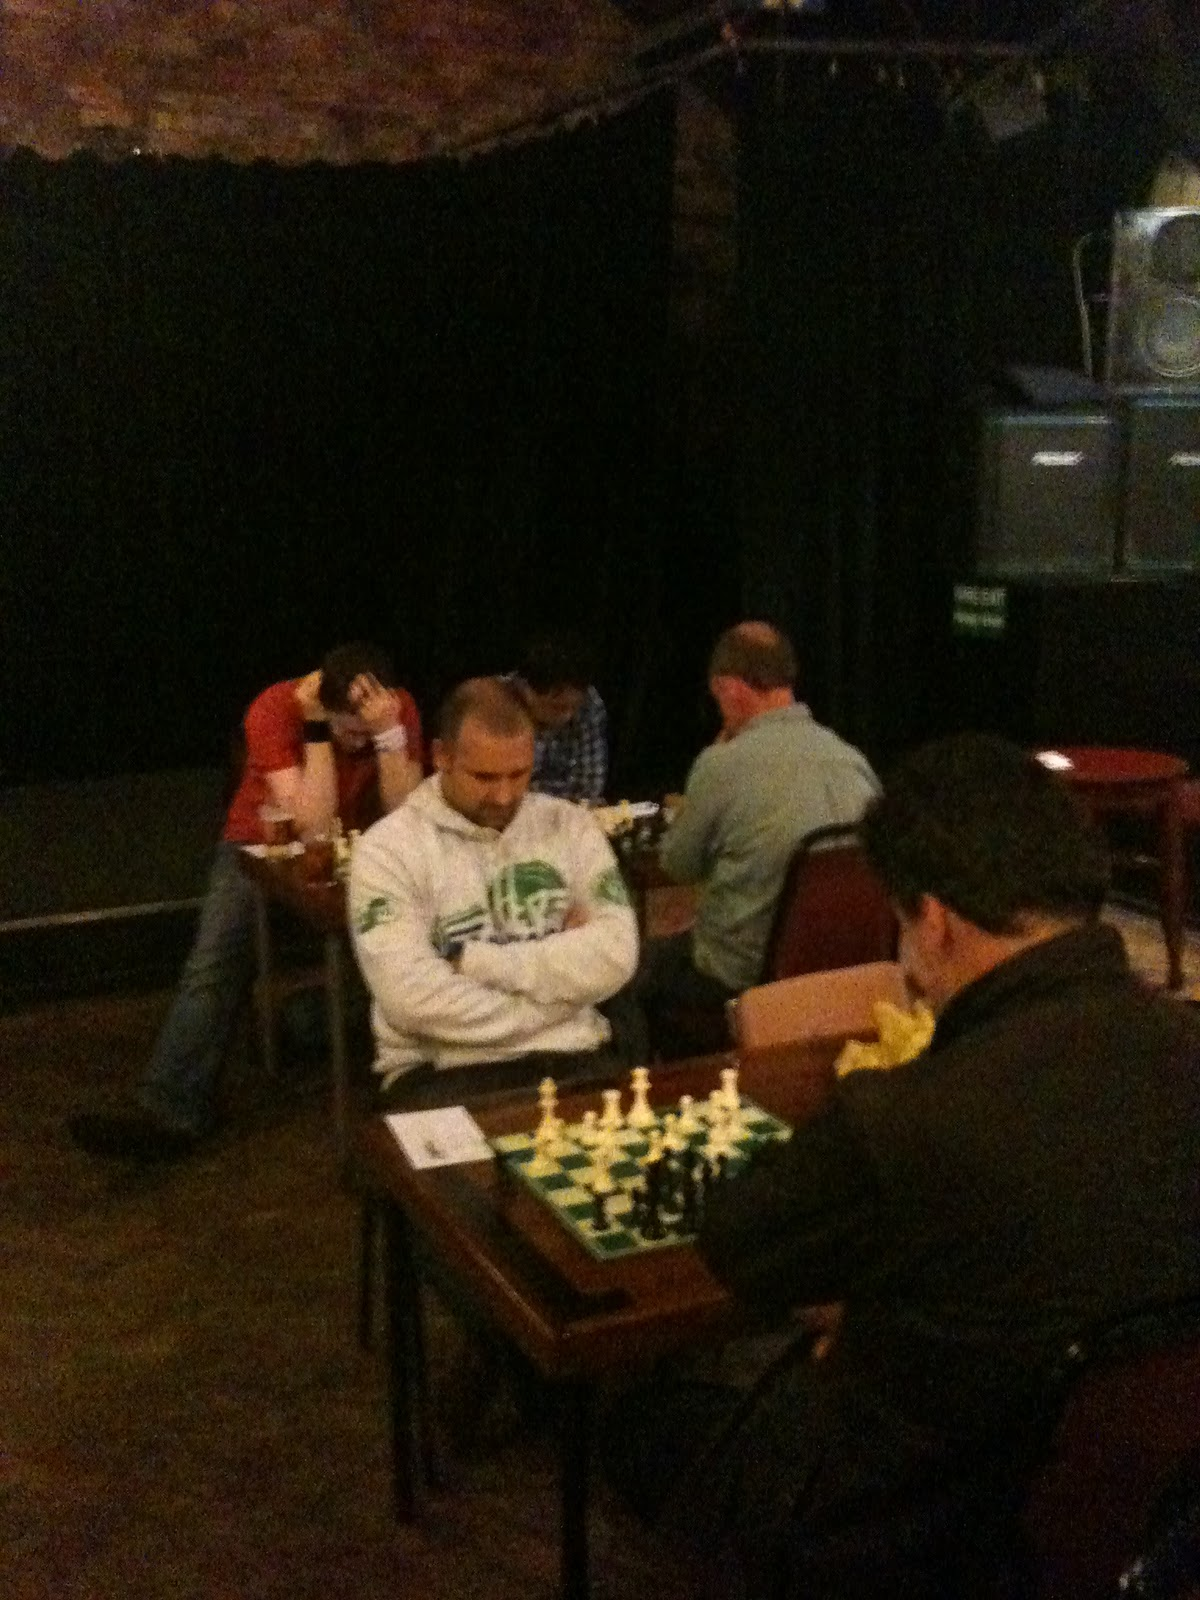 2010 October Hebden Bridge Chess Club Move Checkmate Diagram Furthermore Moves In Addition The Event Matthew Parsons Rear And Nick Sykes Front Were Given Plenty To Think About Their Games Which Both Ended Draws